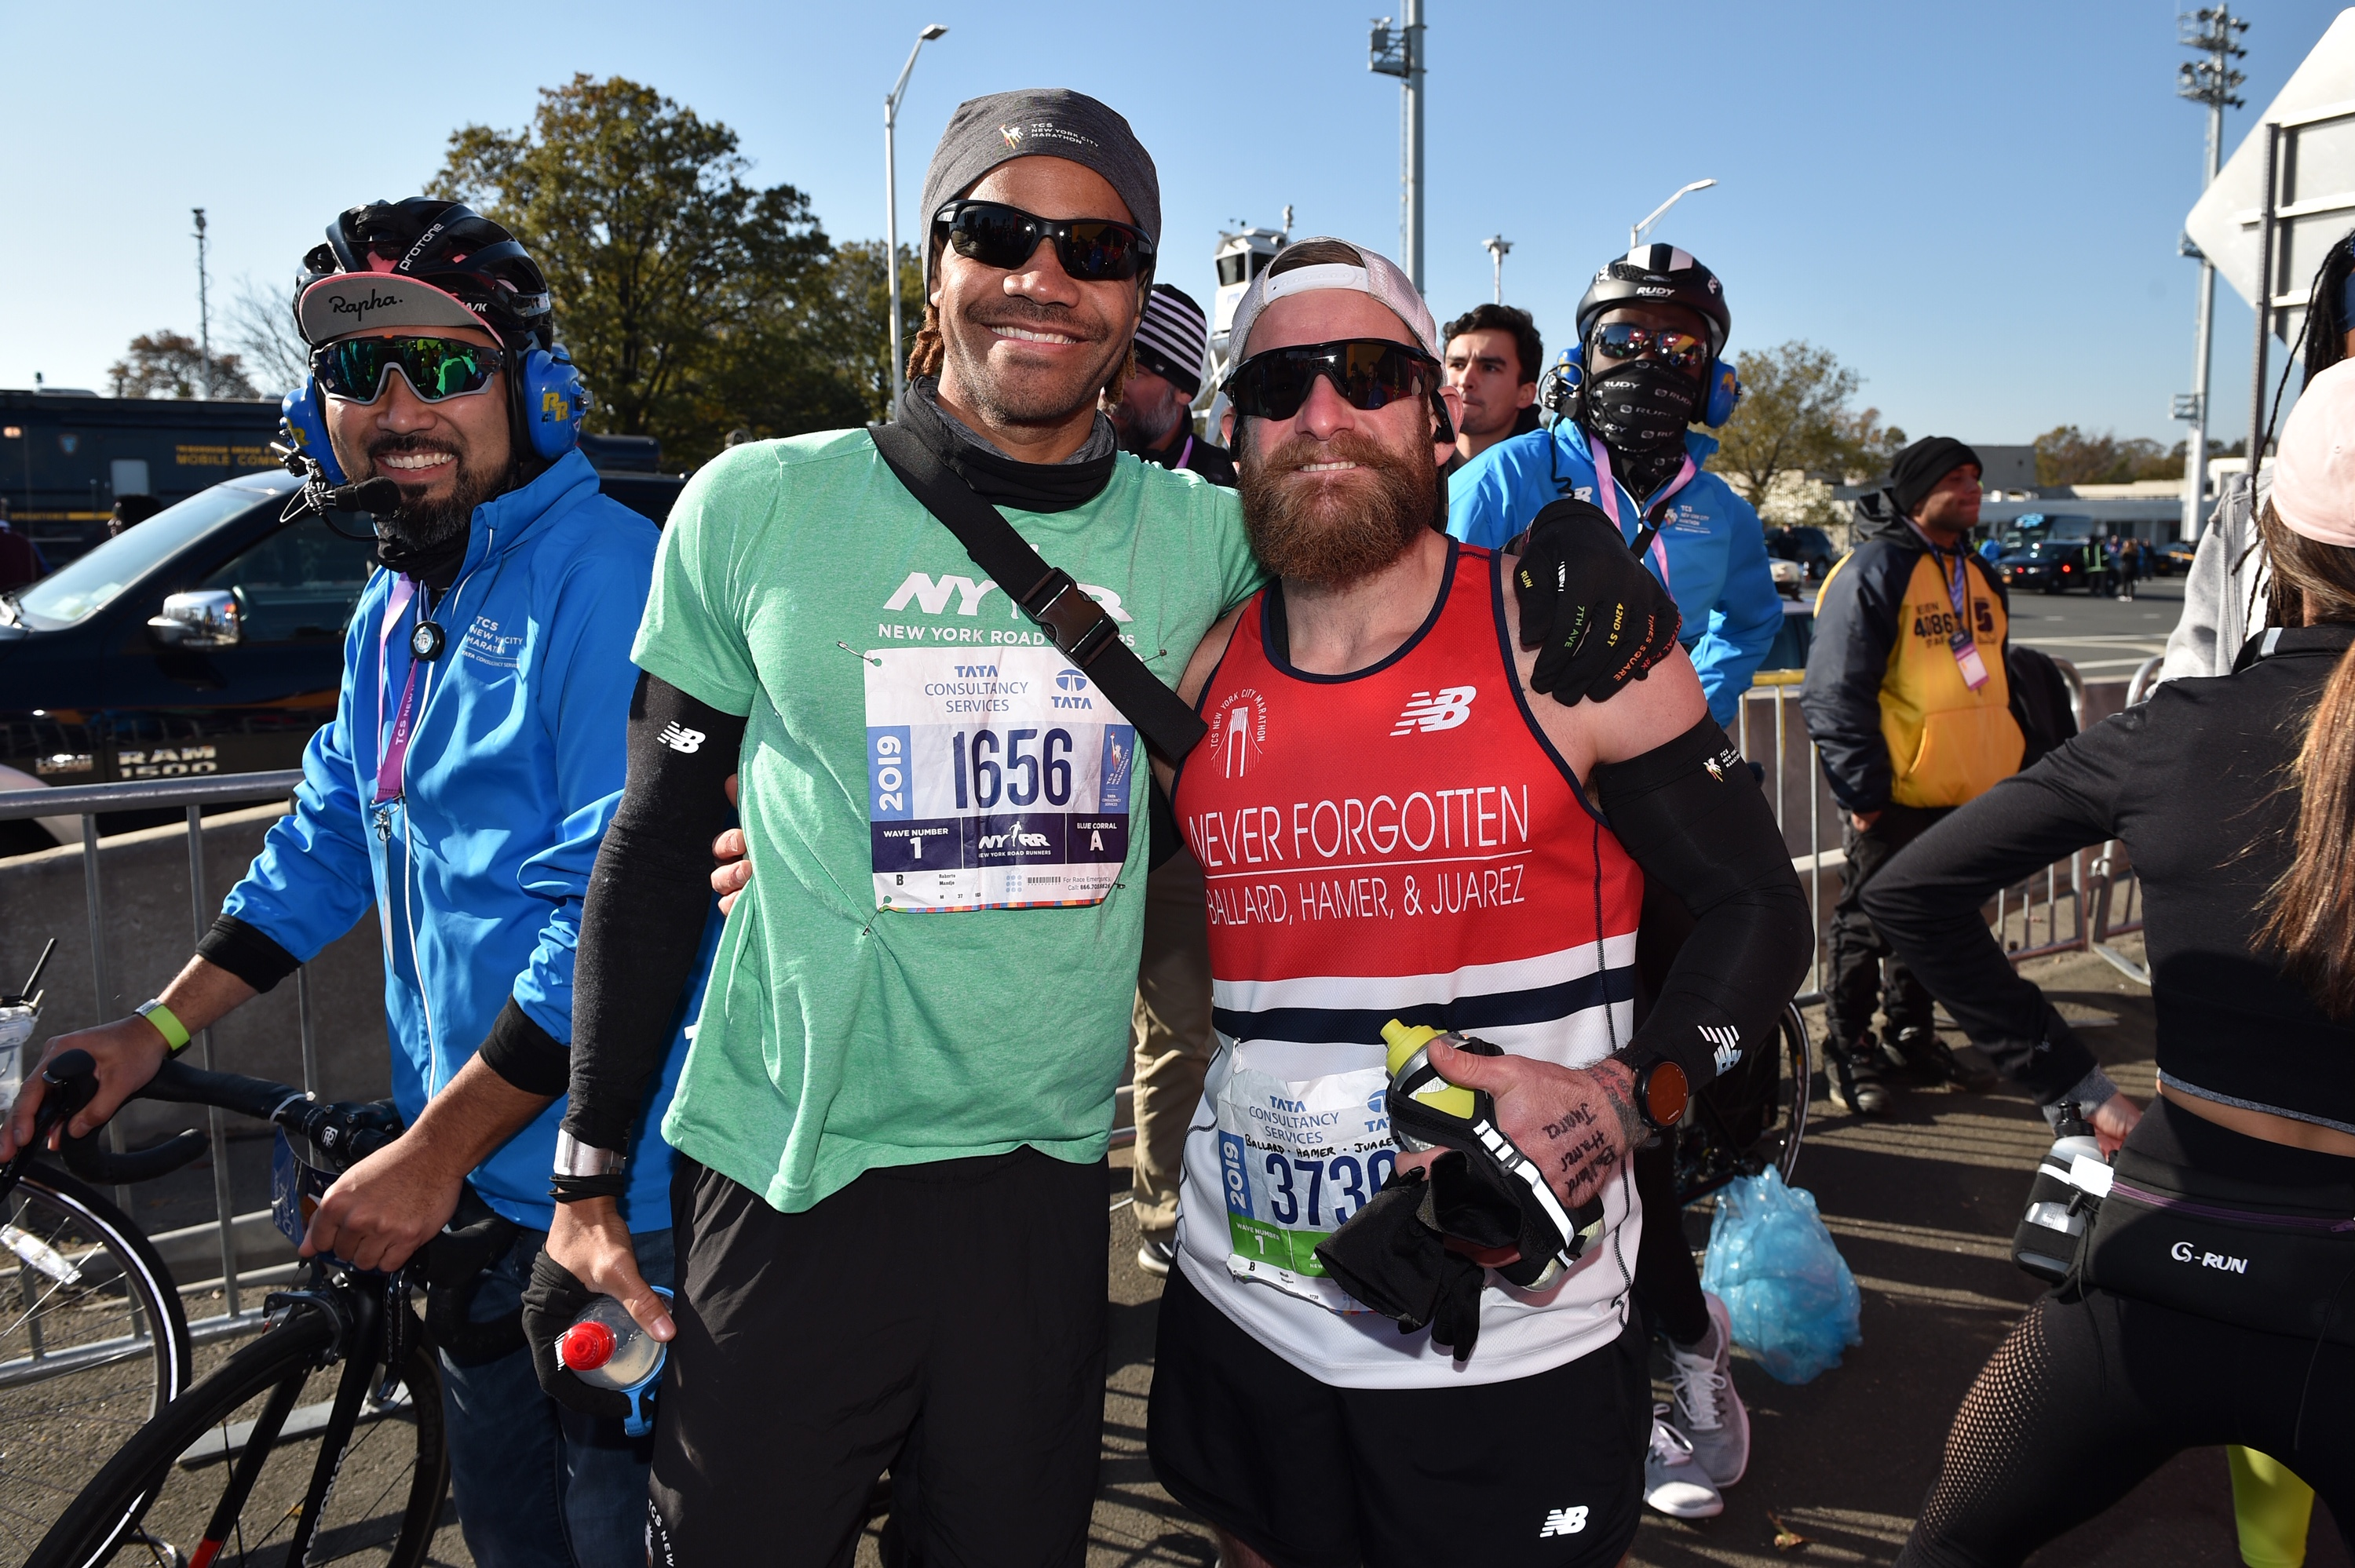 Micah Herndon, right, and his coach Roberto Mandje of NYRR, at the start of the TCS NYC Marathon.